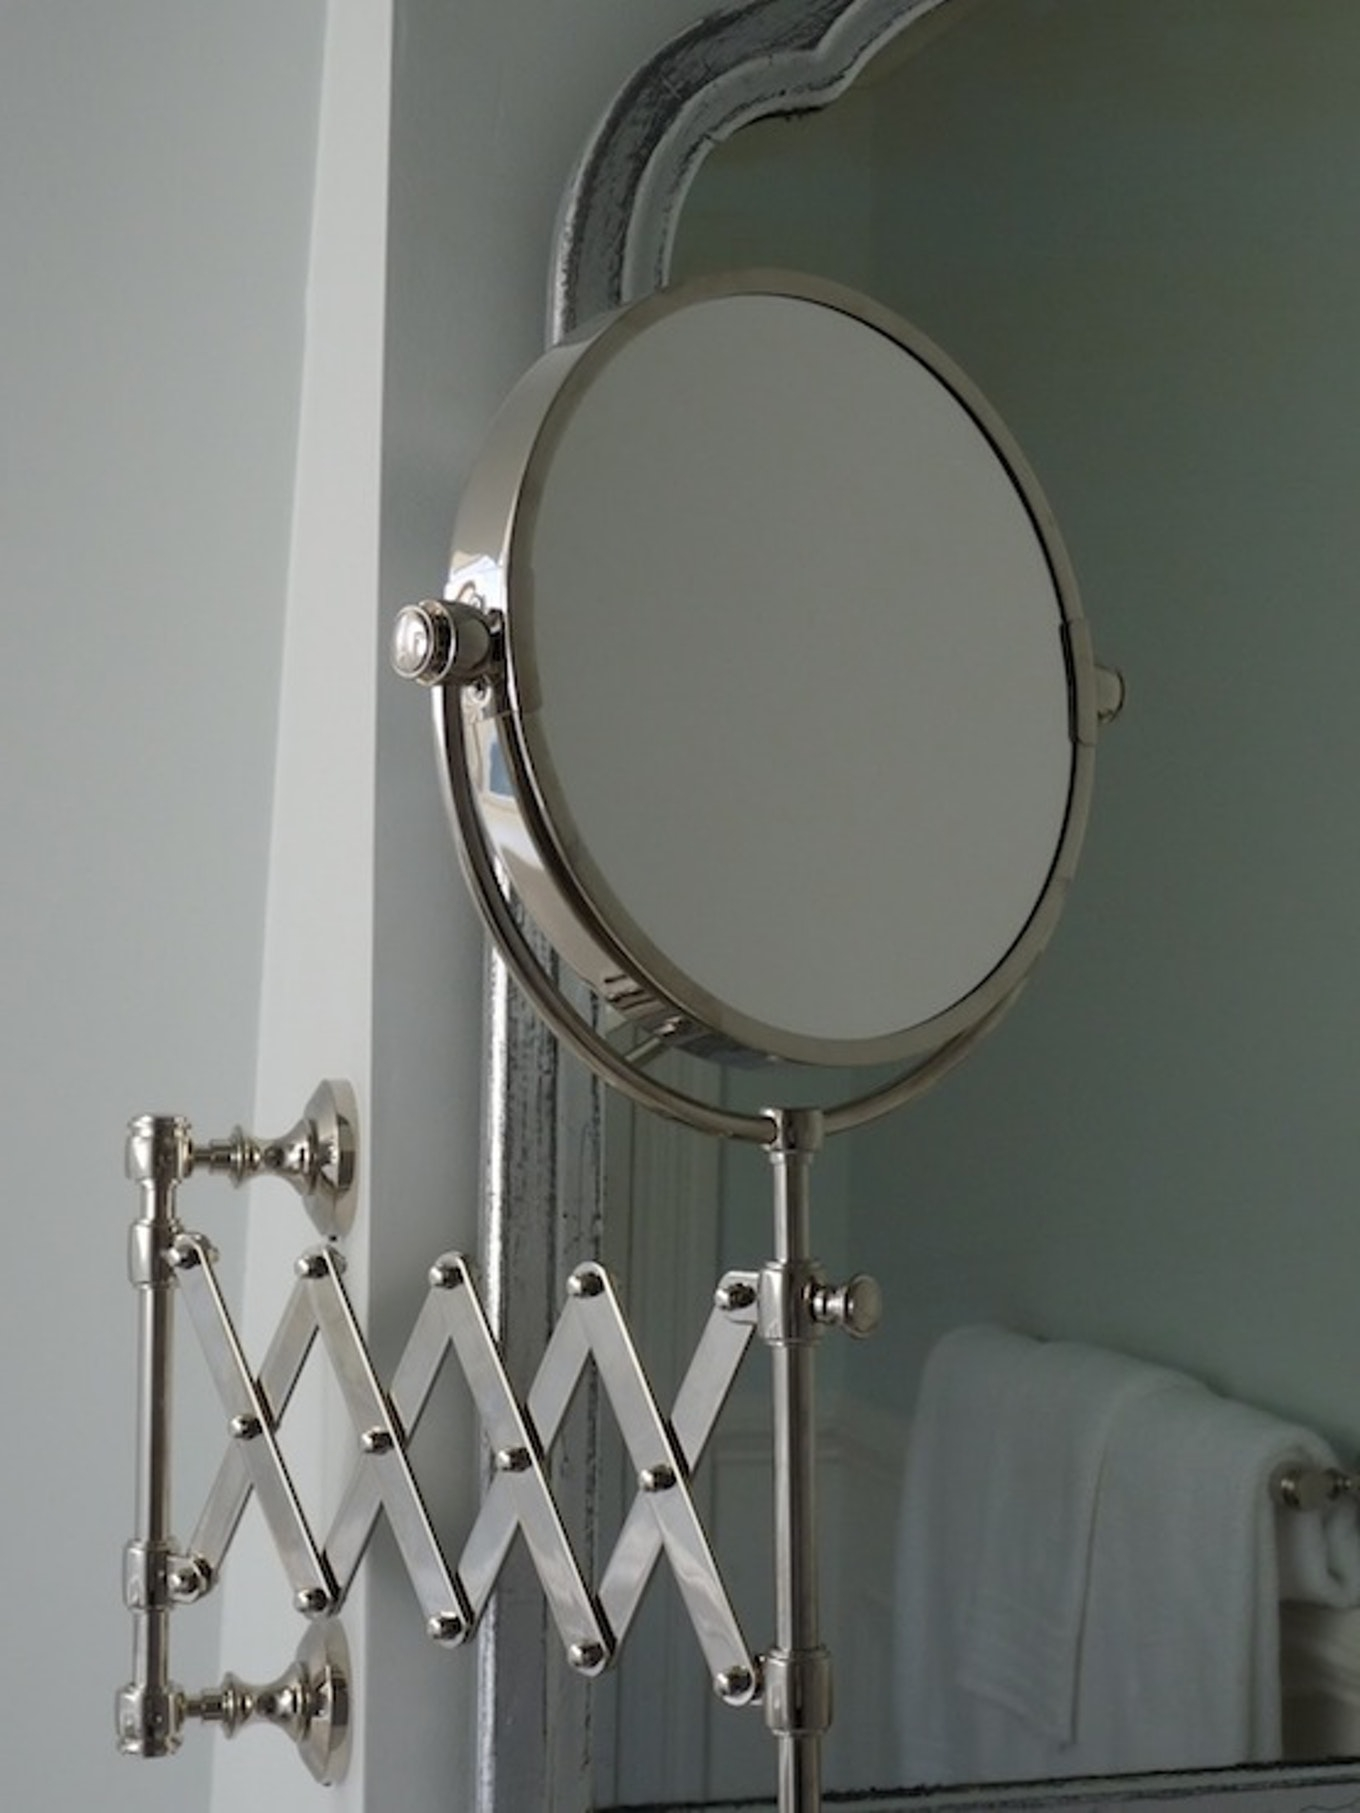 Bronze Wall Extension Mirror Bronze Wall Extension Mirror arms with extension mirrors bathroom magnifying mirror 10x bronze 1360 X 1813